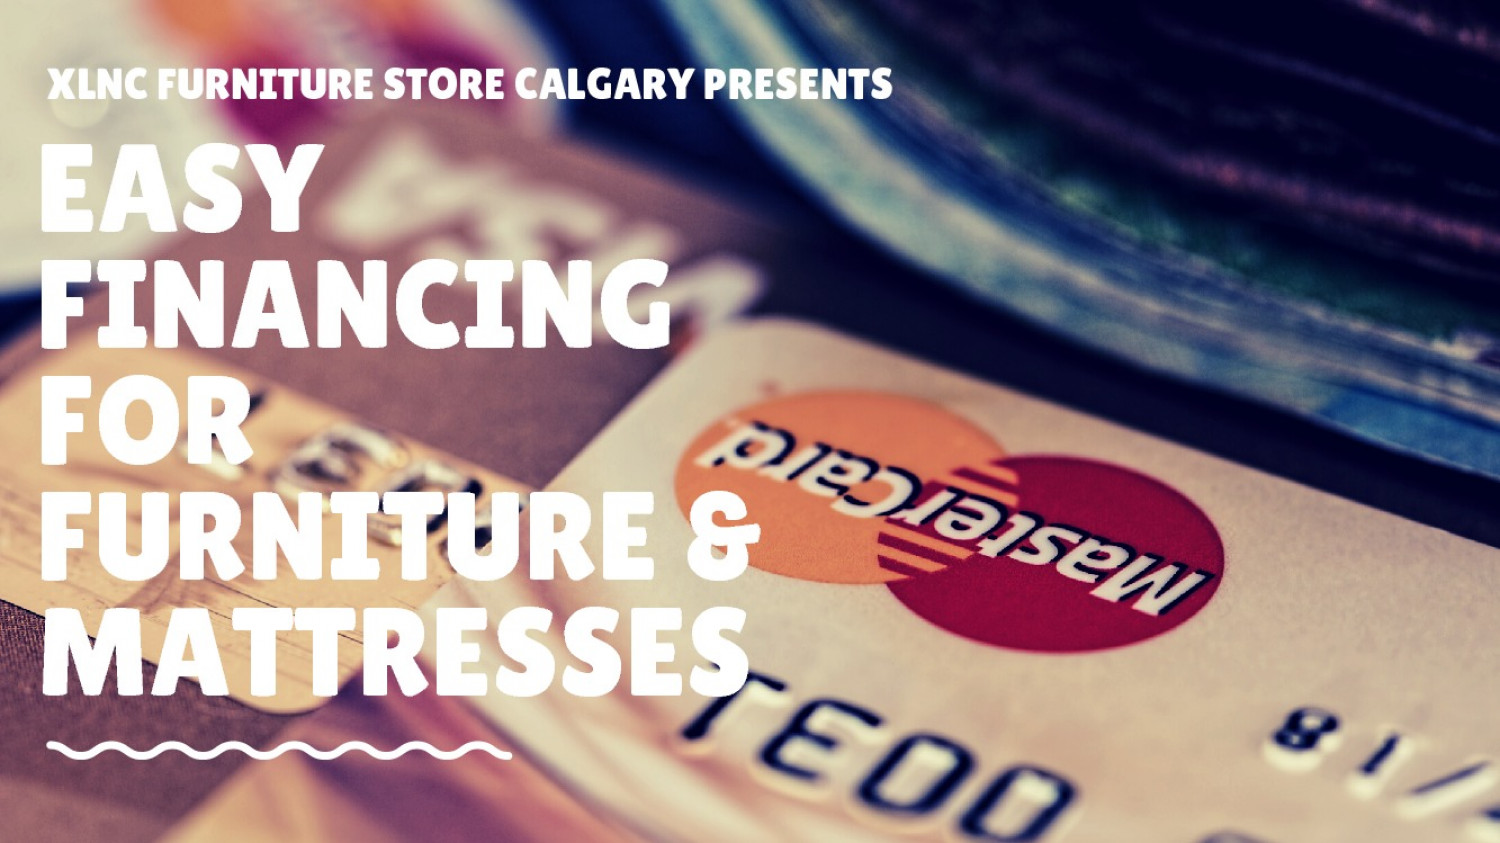 Shop Furniture Stores Calgary Buy now Pay Later Free Delivery in Calgary, AB Infographic